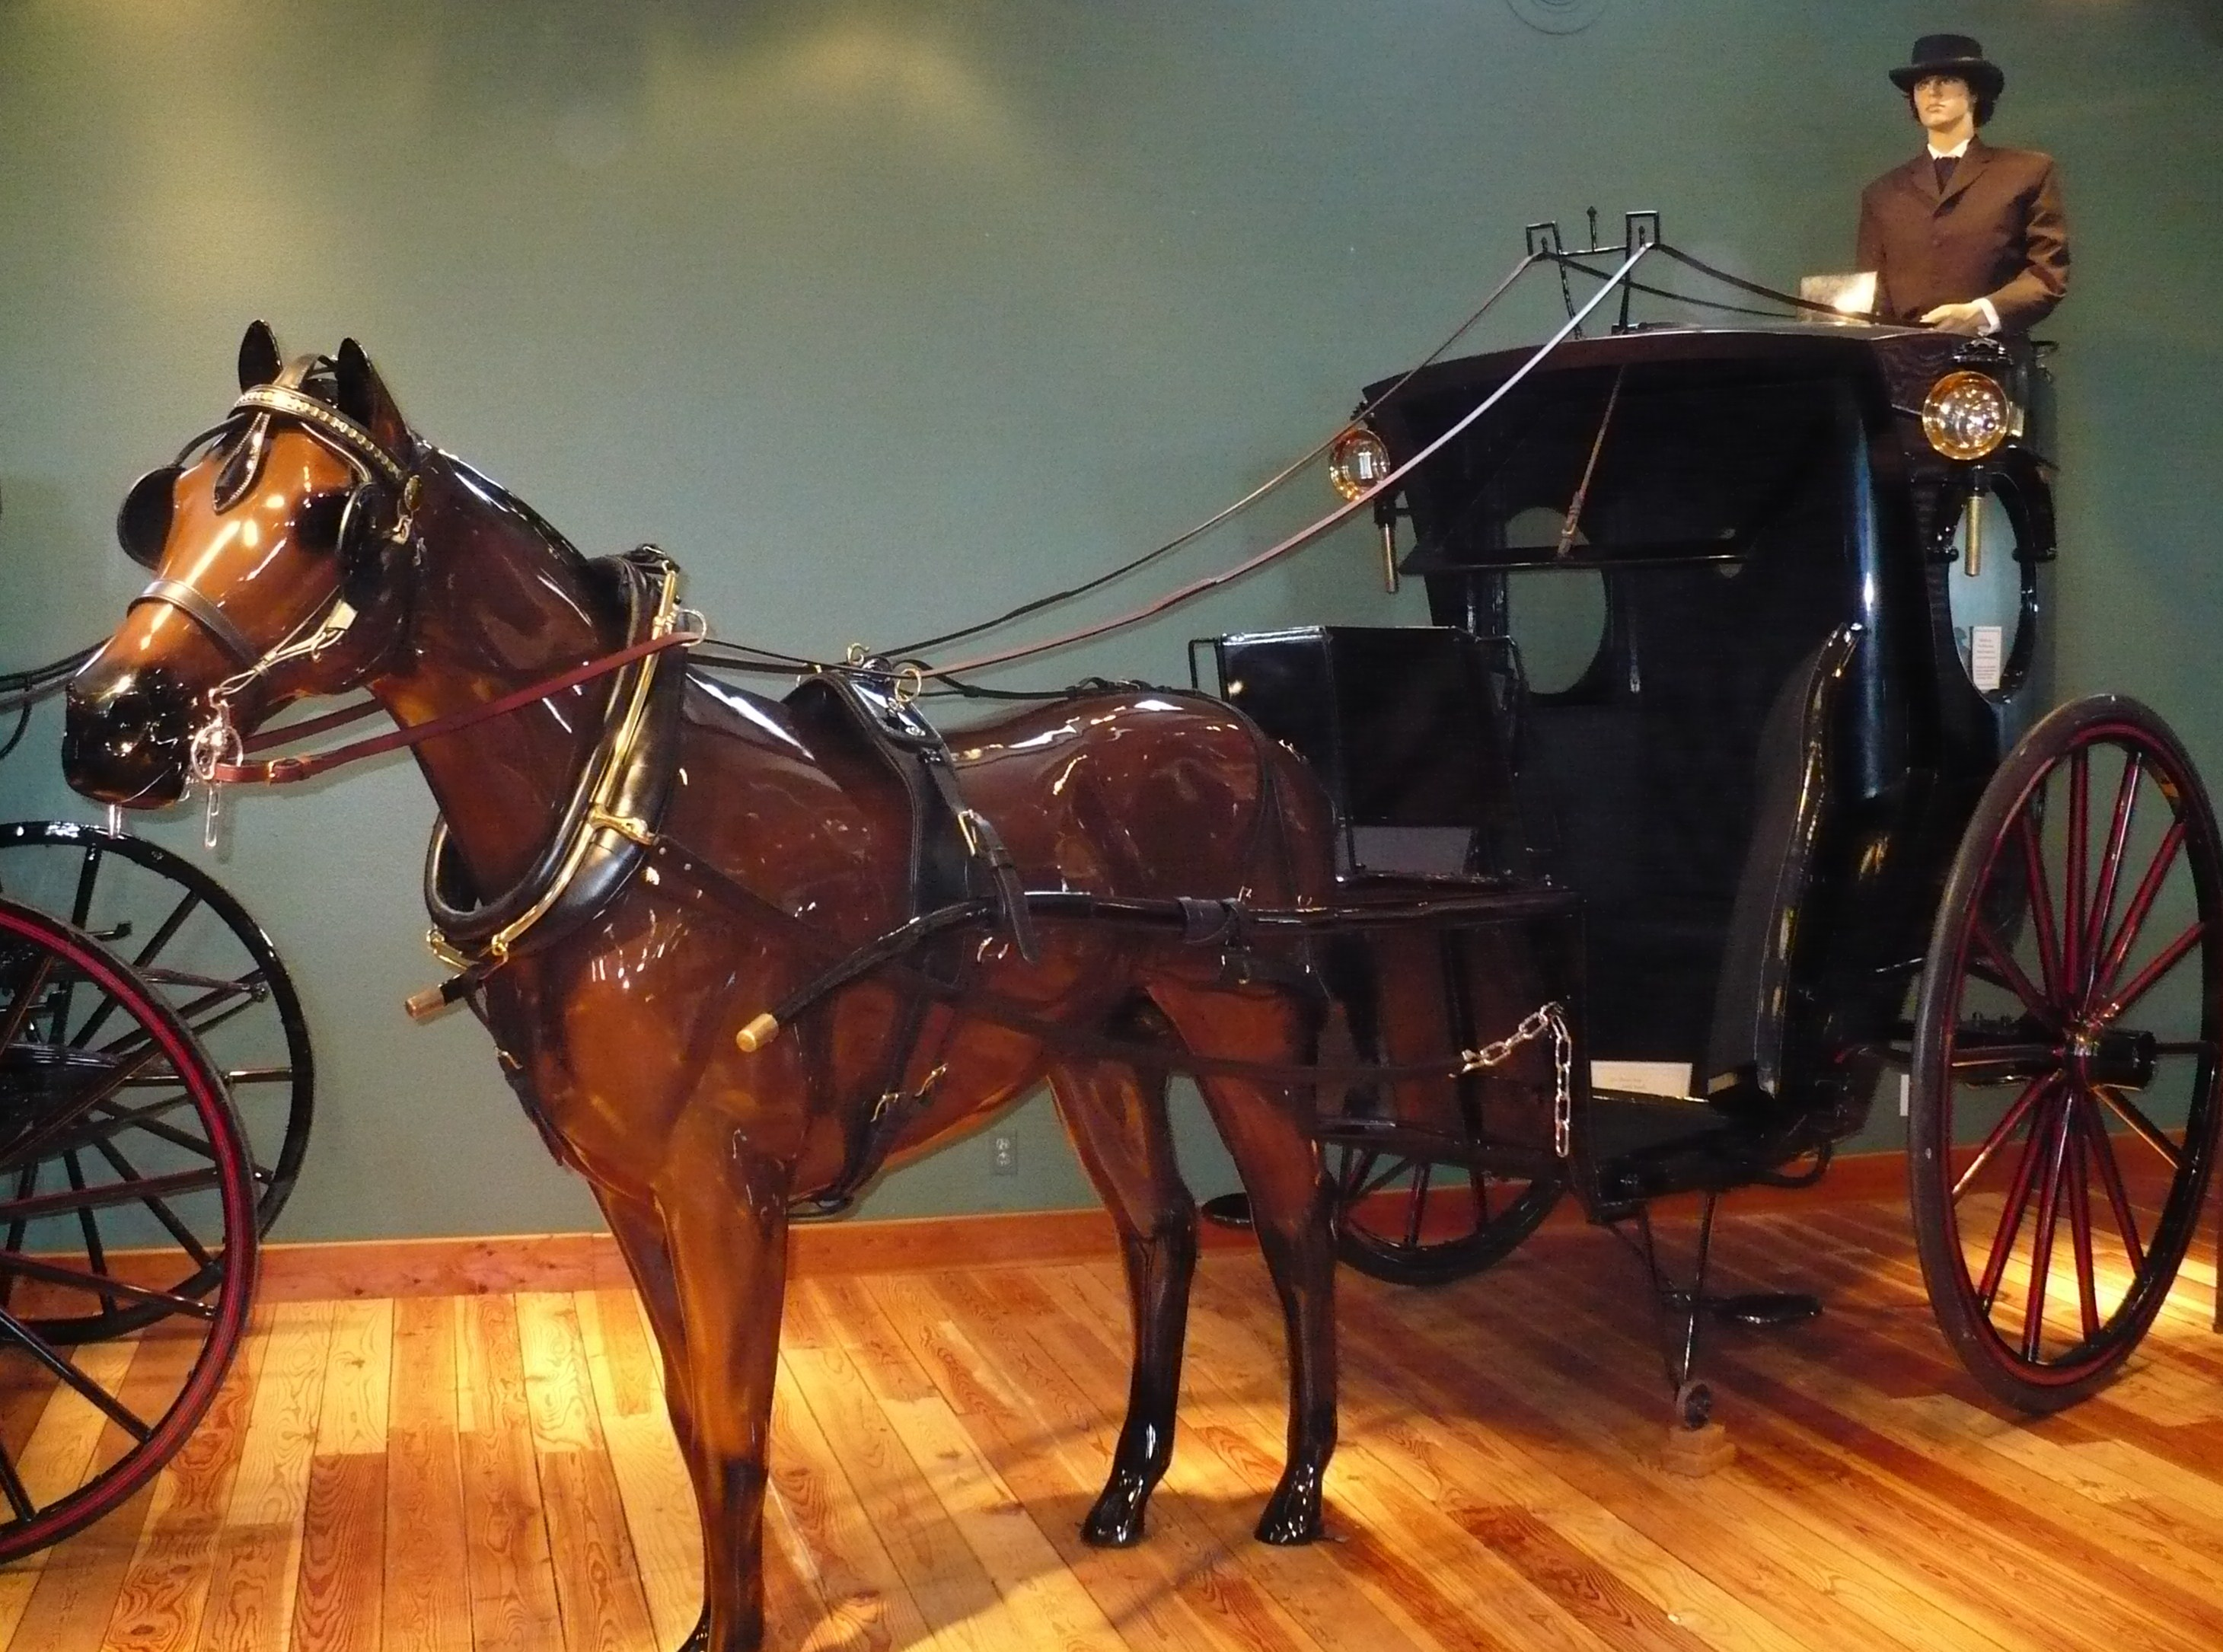 The museum has also earned a national reputation for carriage knowledge including historical and restoration information.